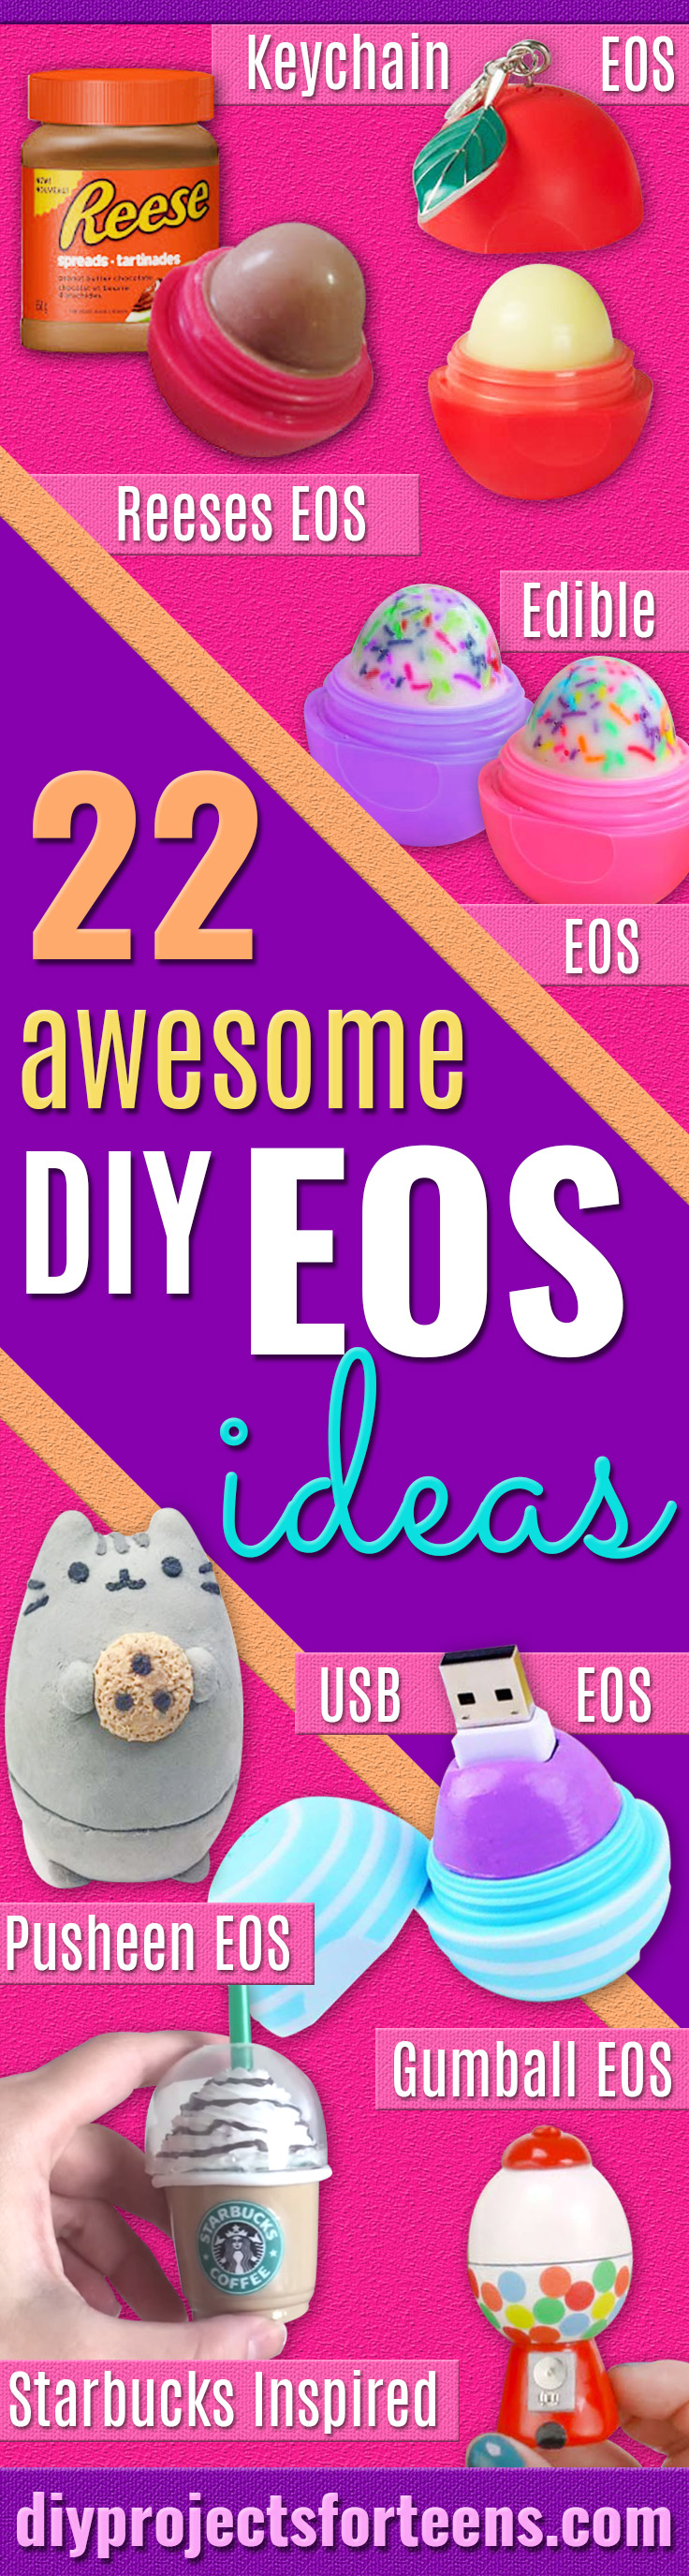 22 Most Awesome DIY EOS ideas - Best DIY EOS Projects - DIY Secret Eos Lip Balm Container - Turn Old EOS Containers Into Cool Crafts Ideas Like Lip Balm, Galaxy, Gumball Machine, and Watermelon - Fun, Cheap and Easy DIY Projects Tutorials and Videos for Teens, Tweens, Kids and Adults s